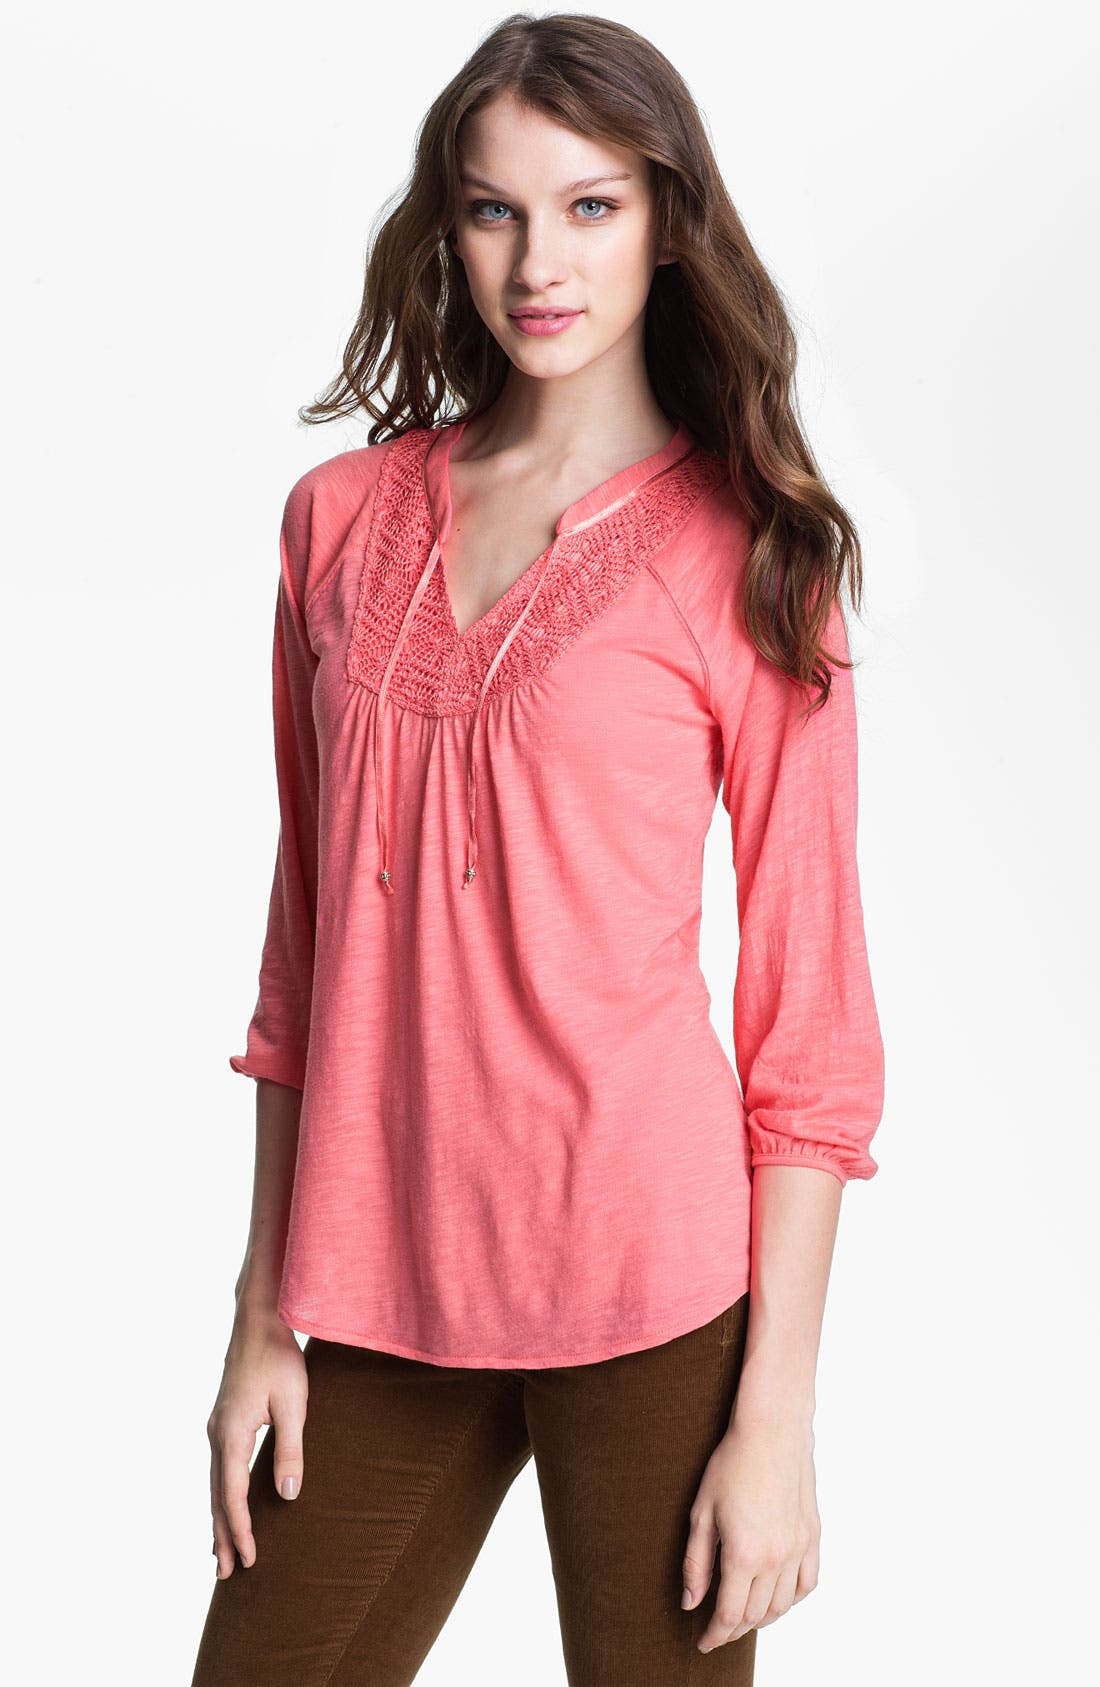 Alternate Image 1 Selected - Lucky Brand 'Camille' Top